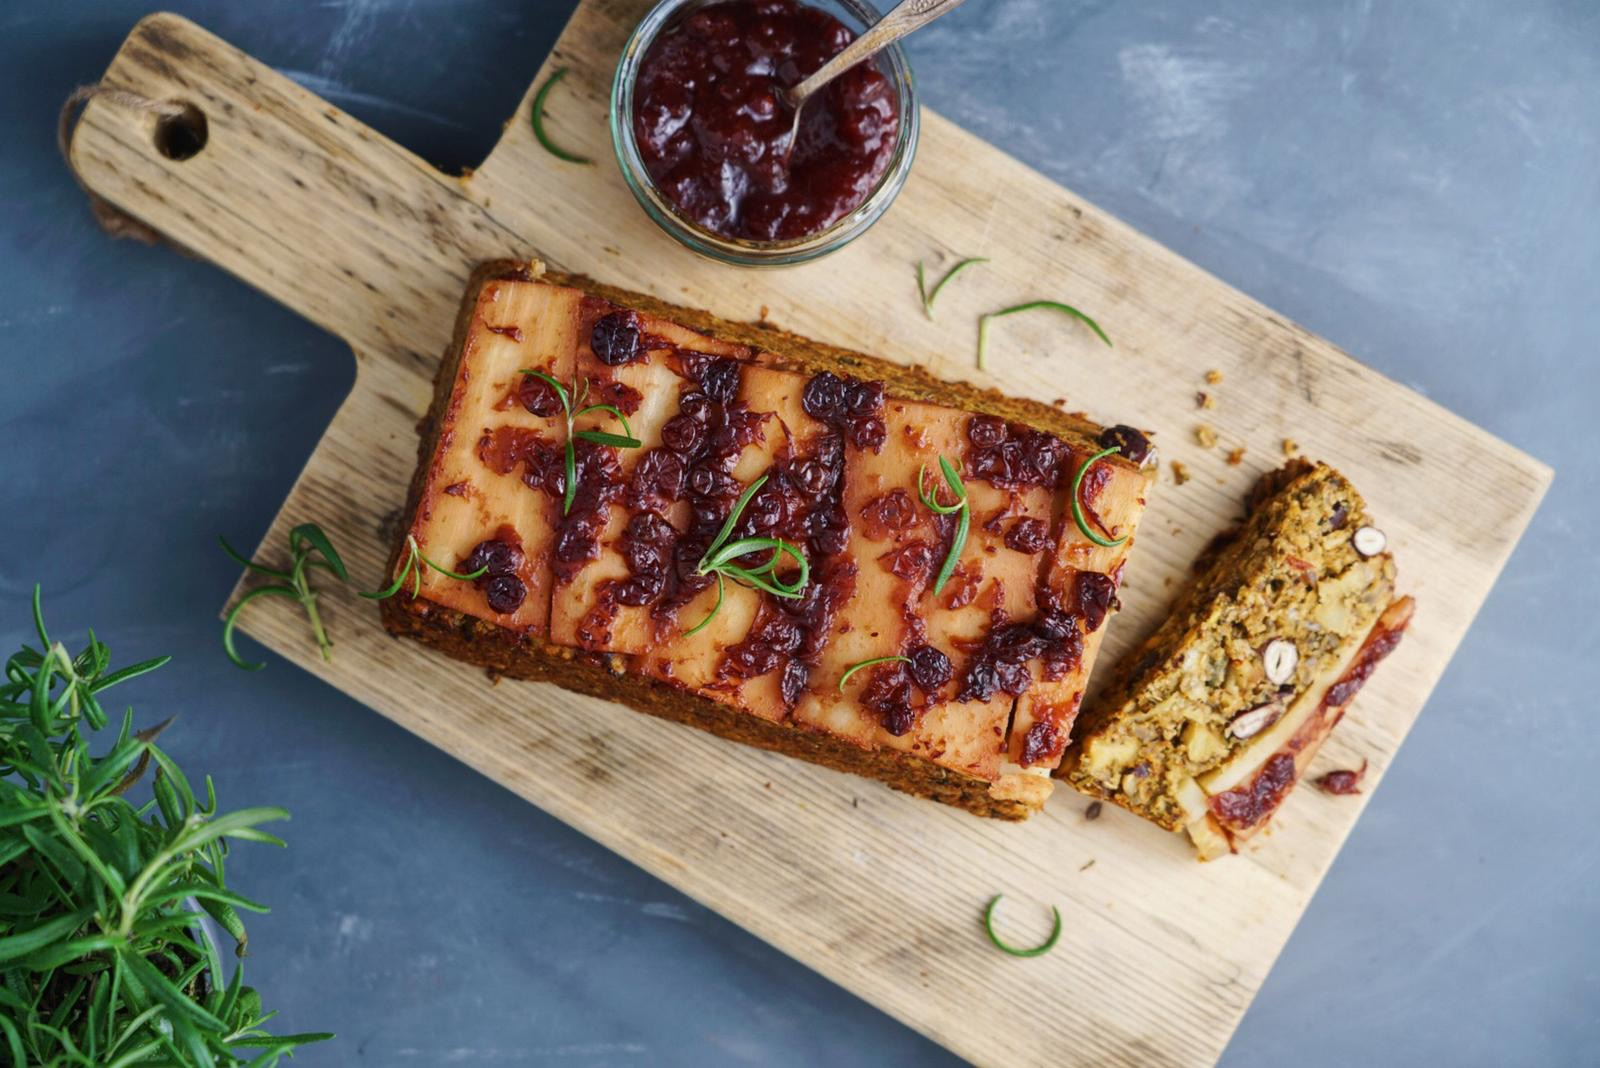 Parsnip and Cranberry Nut-free Nut Roast